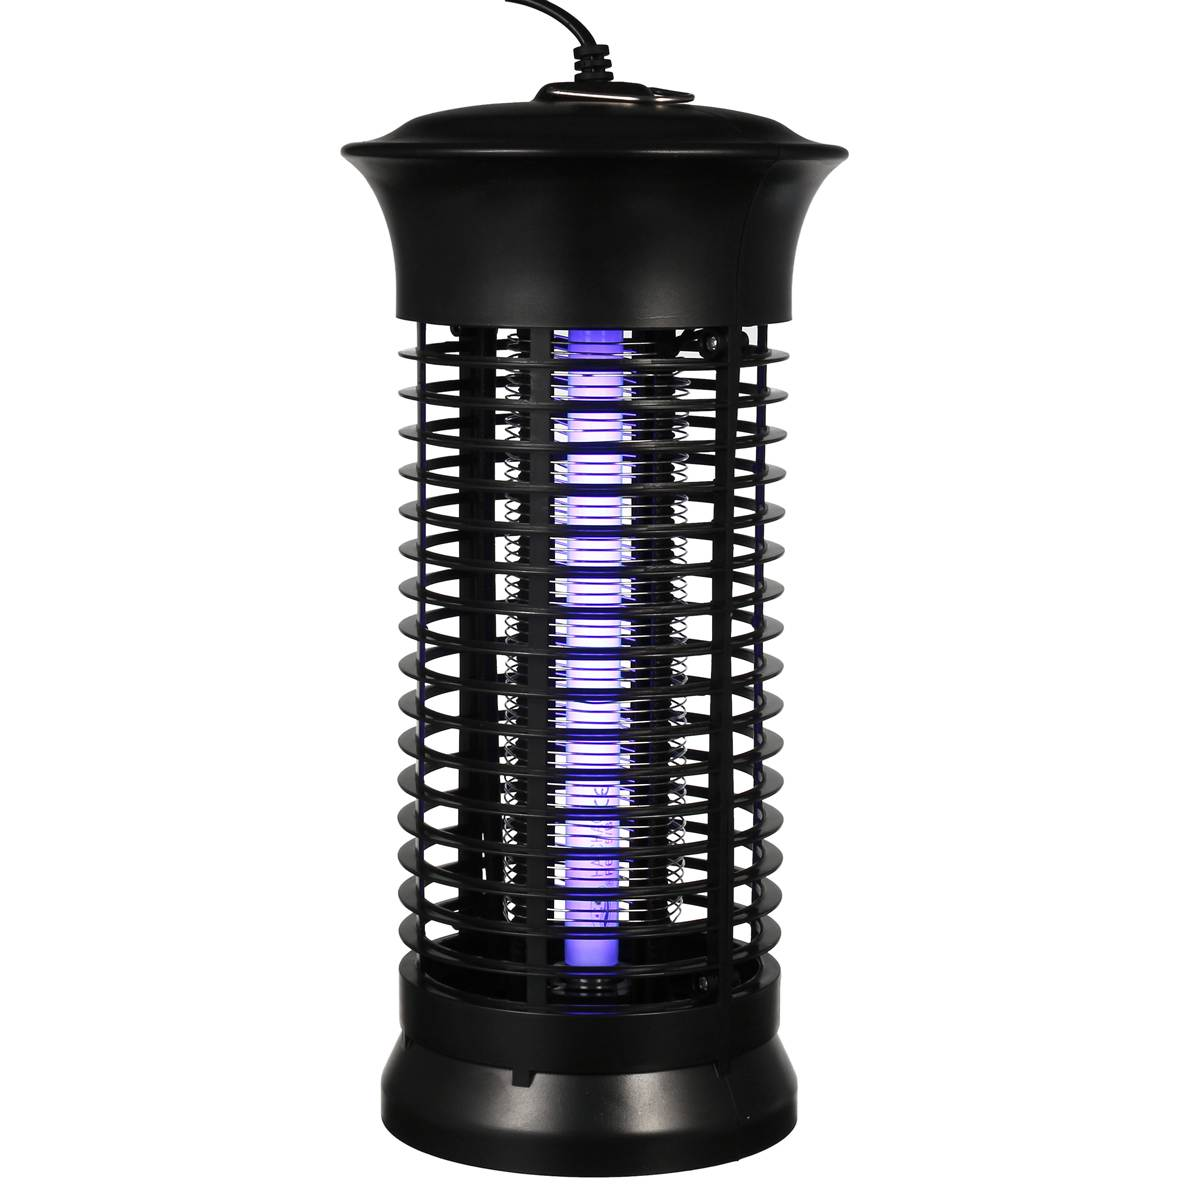 110v/220v 6W Electic Mosquito Killer Lamp Photocatalyst Mosquito Dispeller Repellents Insect Fly Bug Zapper Trap Pest Control|Repellents| |  - title=